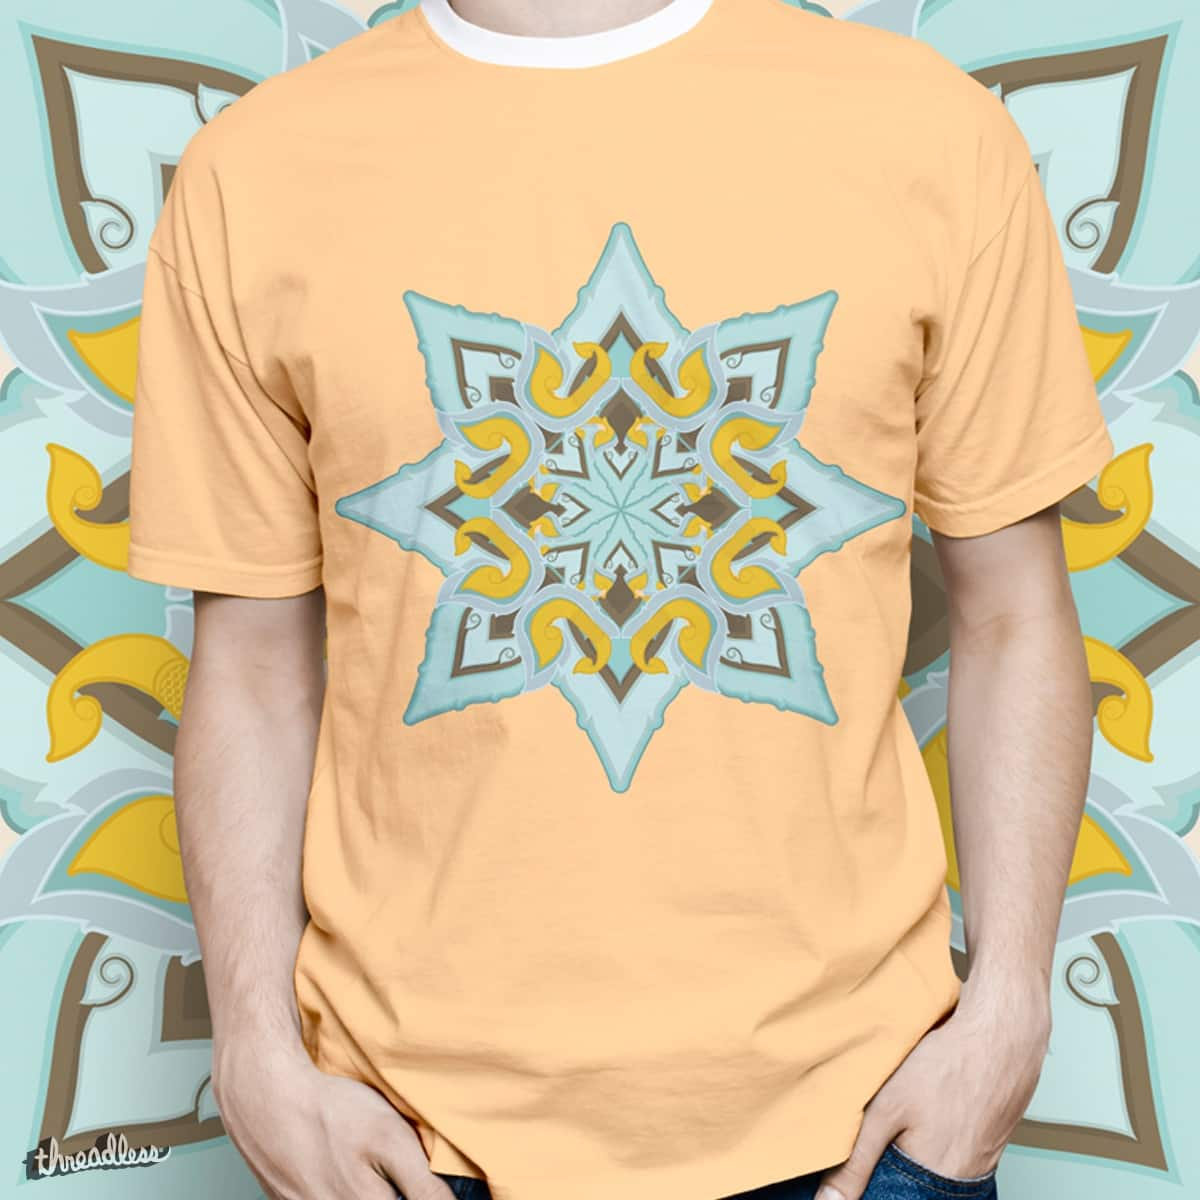 Complex Lai thai Star by LuisFaus on Threadless